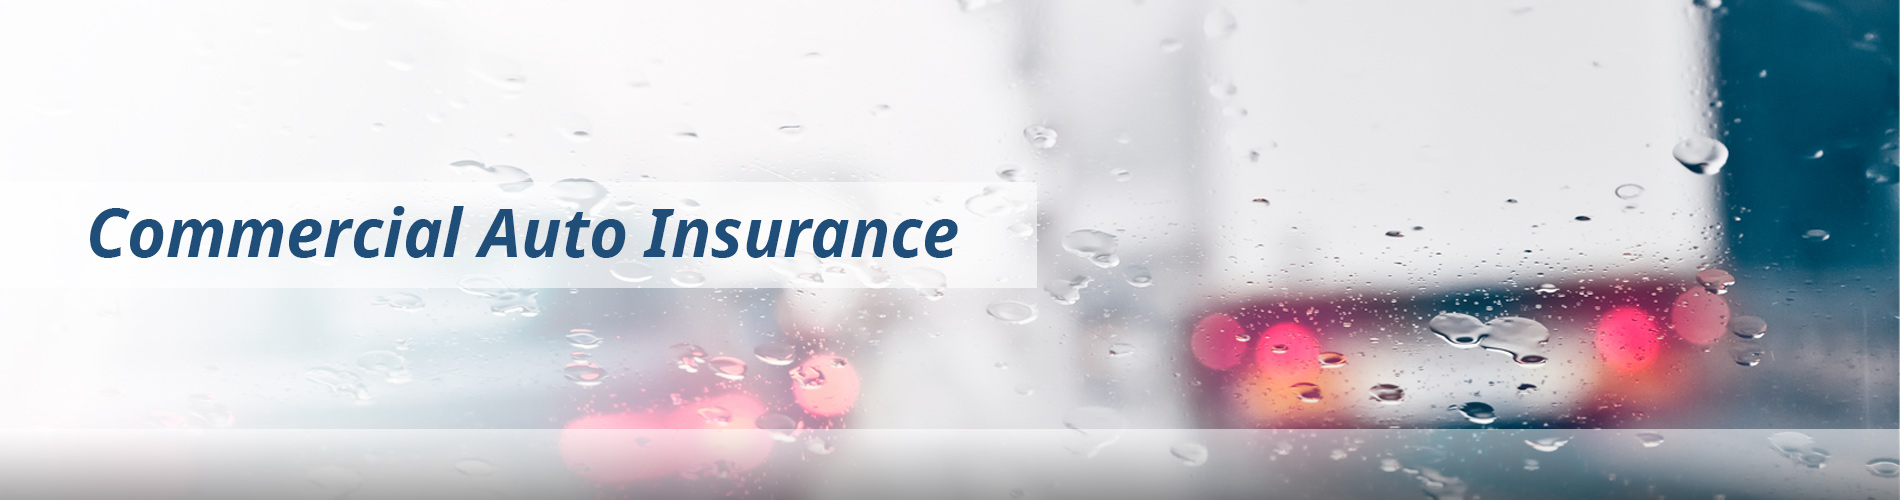 3g commercial auto insurance